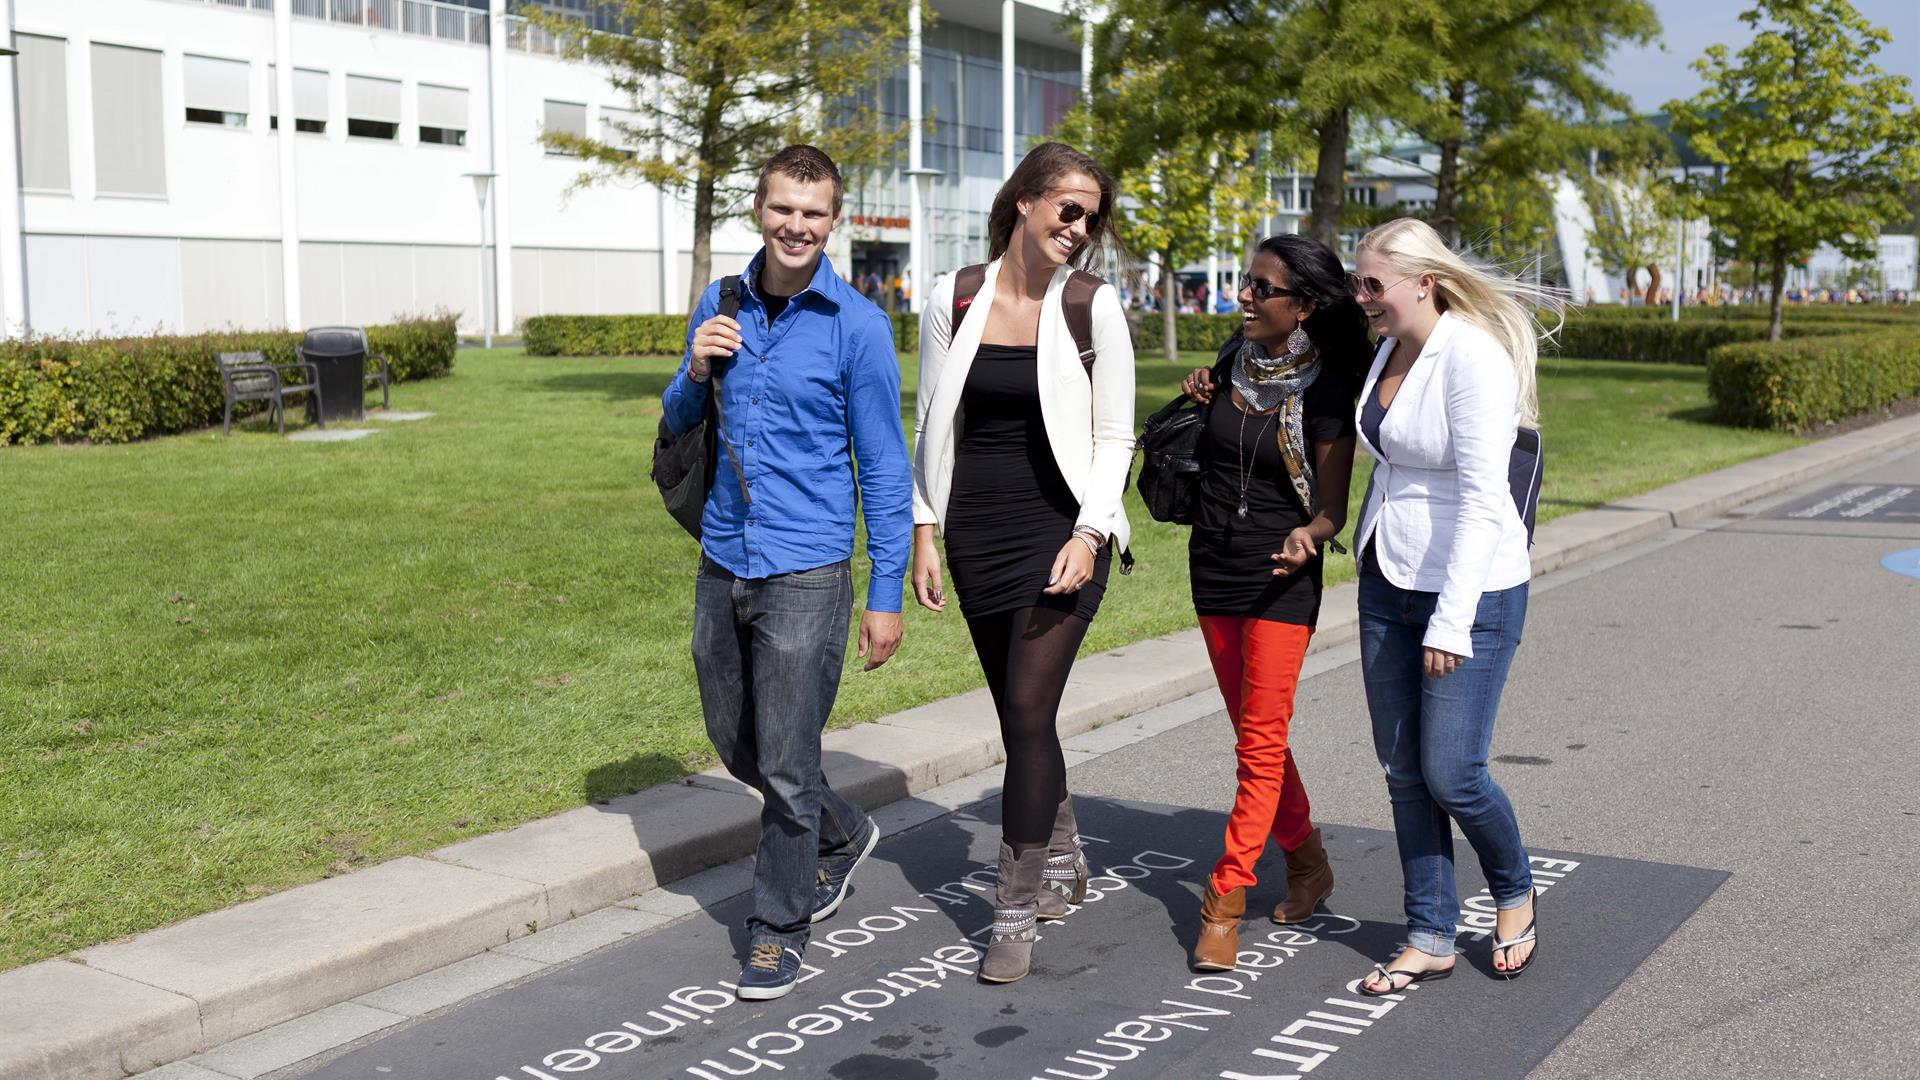 Welcome to Hanze University of Applied Sciences